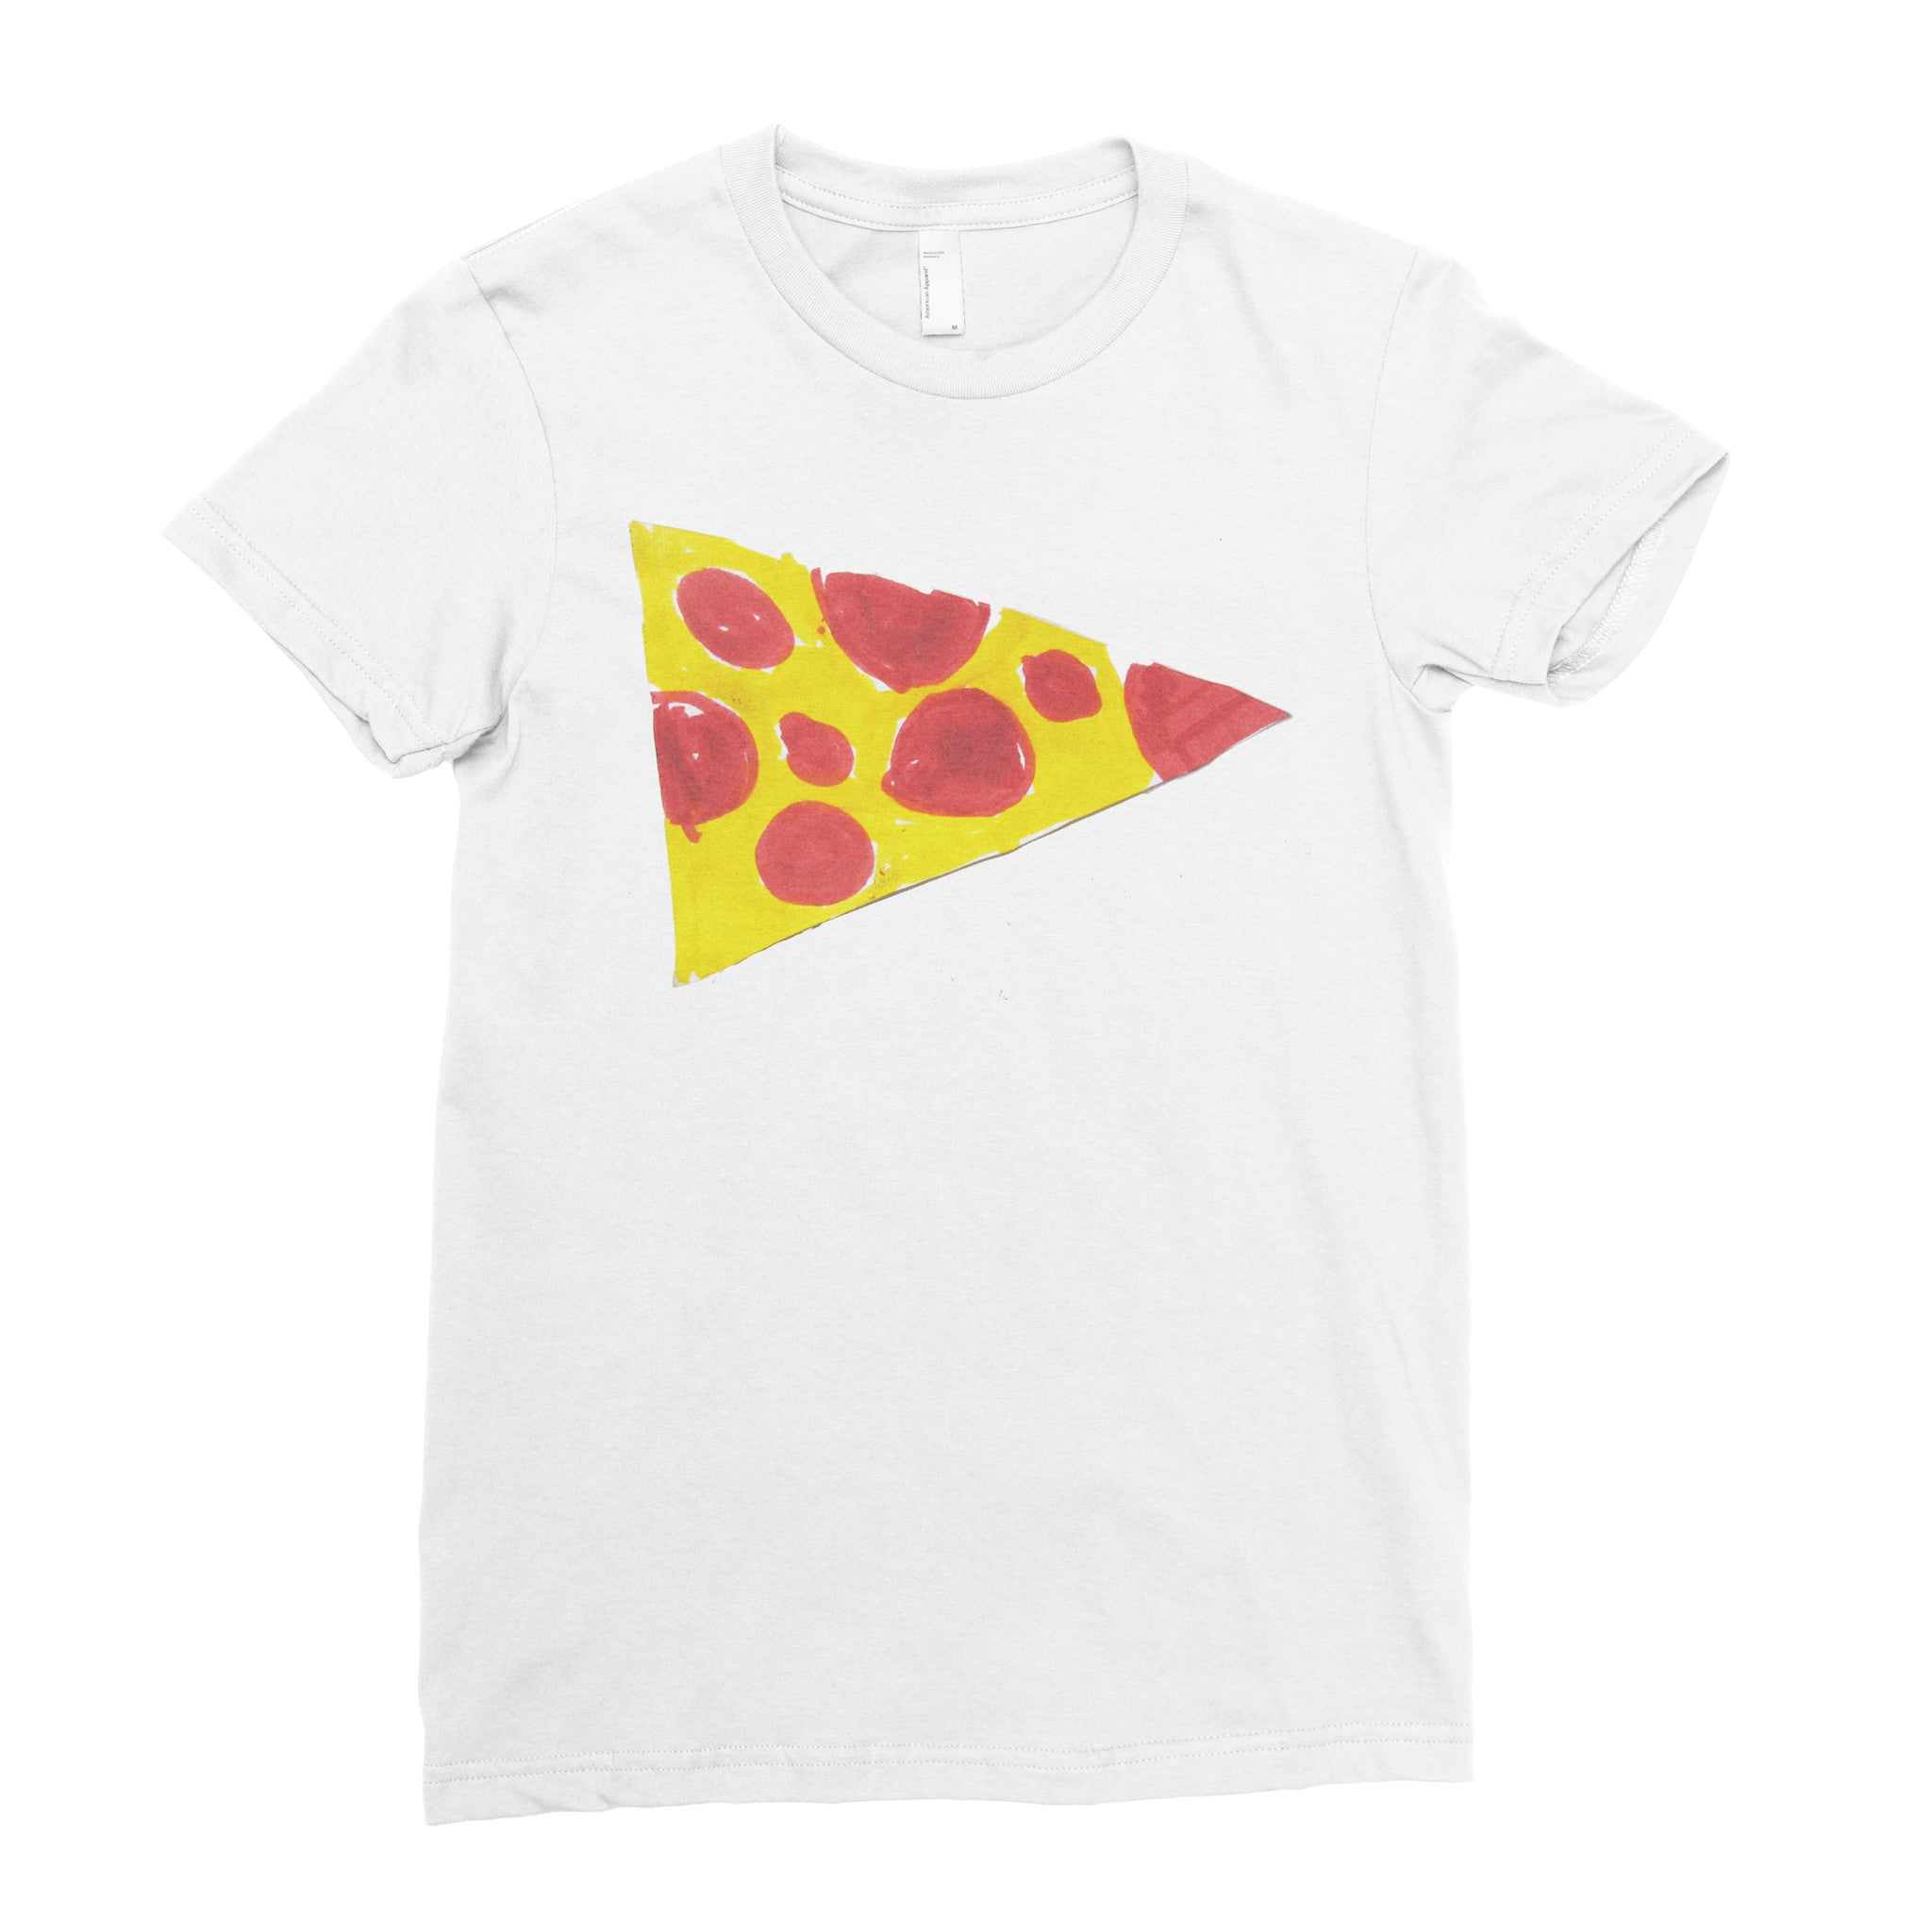 Pizza!!!! - Adult T-shirt - Rightside Shirts